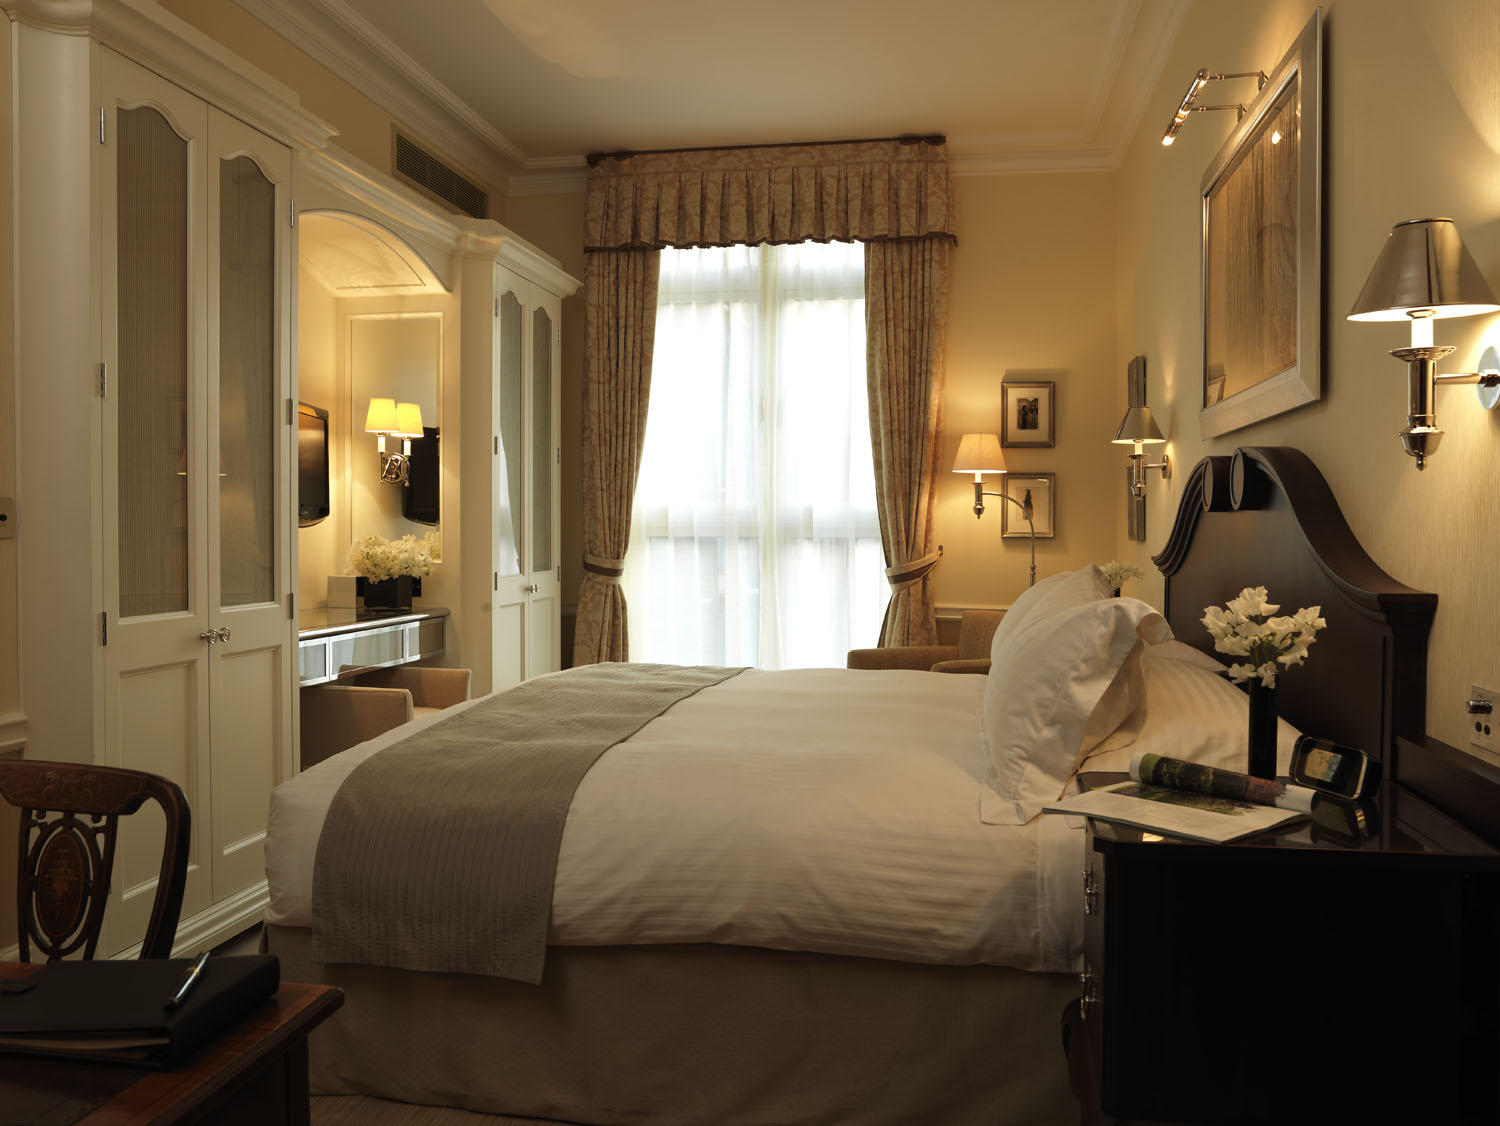 Connaught Superior King bedded room 311.jpg